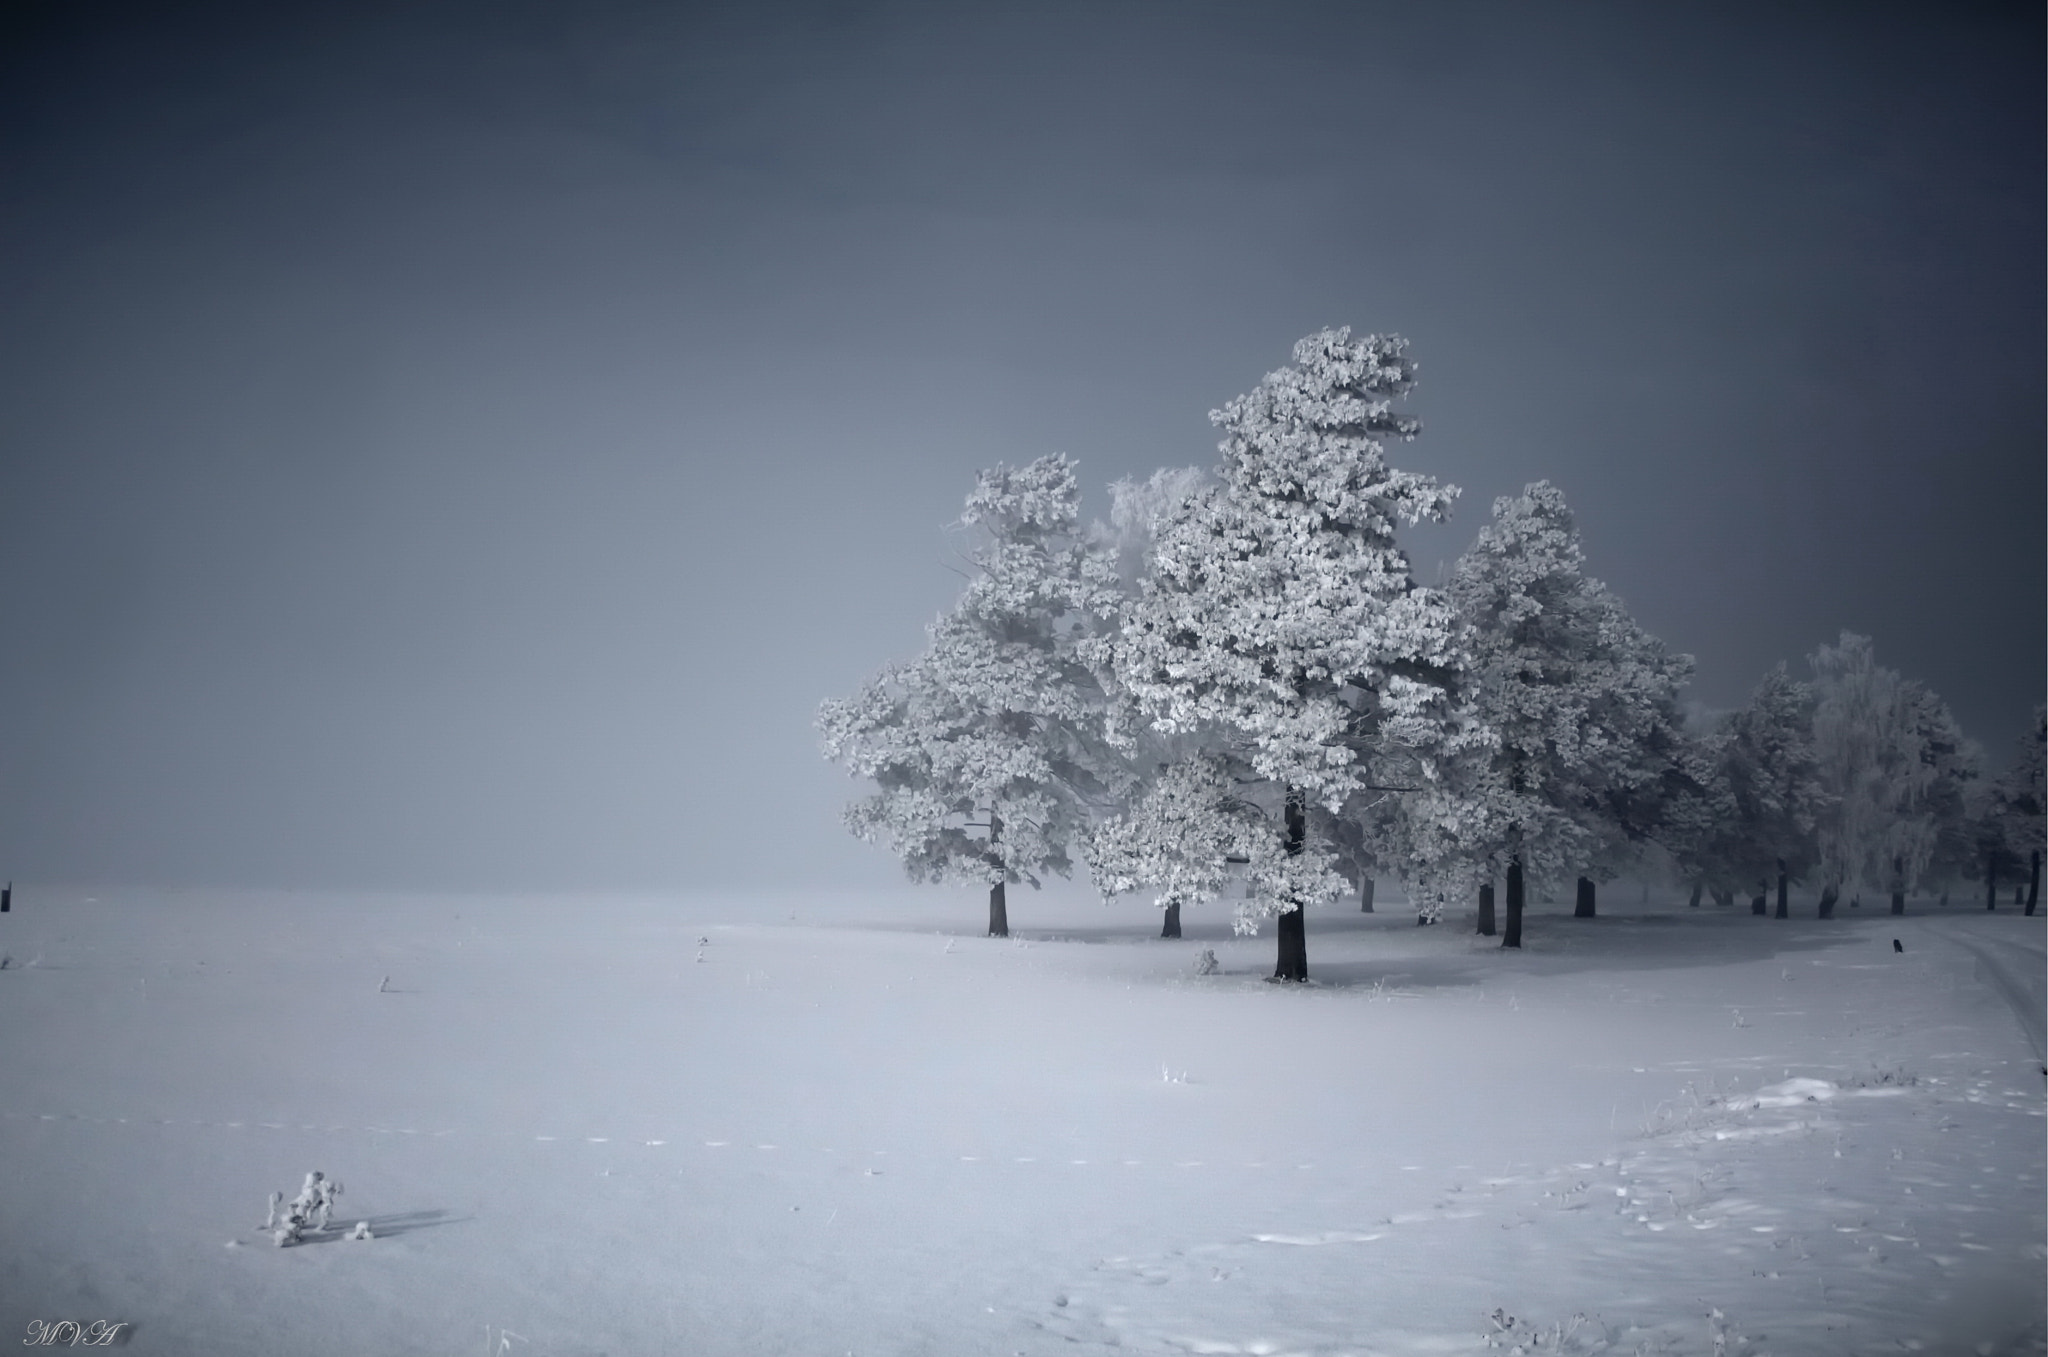 Photograph Winter's Tale-2 by Maxim Agafonoff on 500px